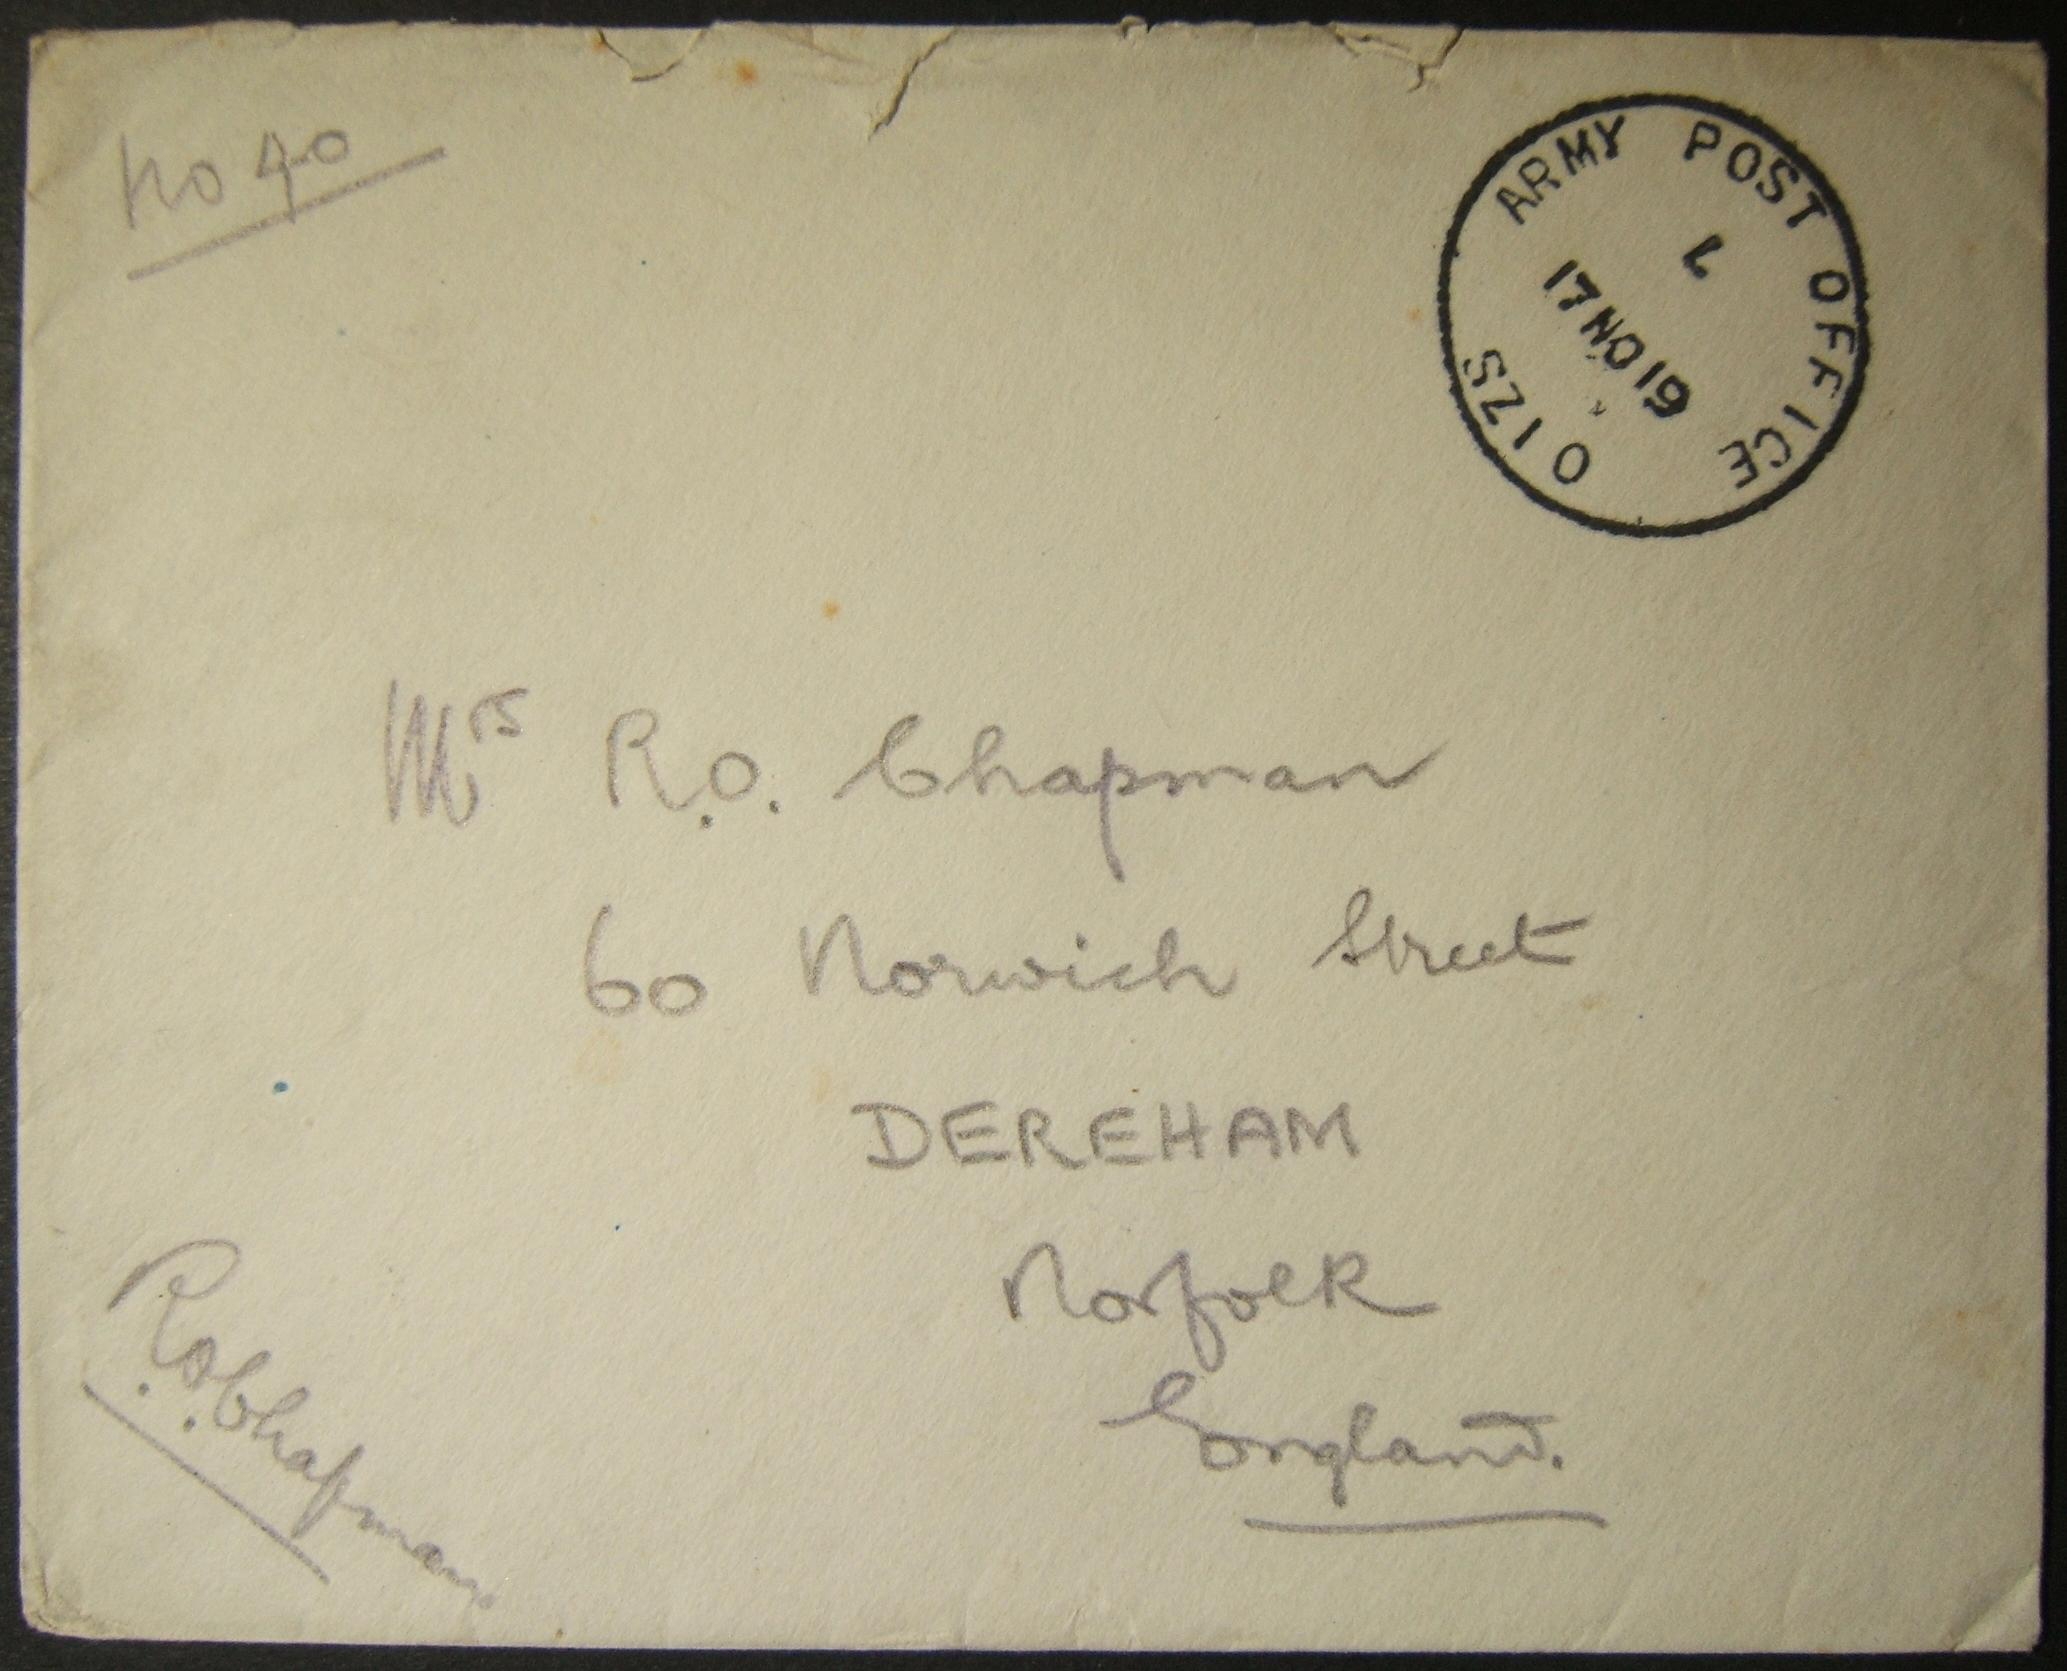 11/1919 WWI Egypt British military mail with APO SZ 10 postmark past latest known date of use